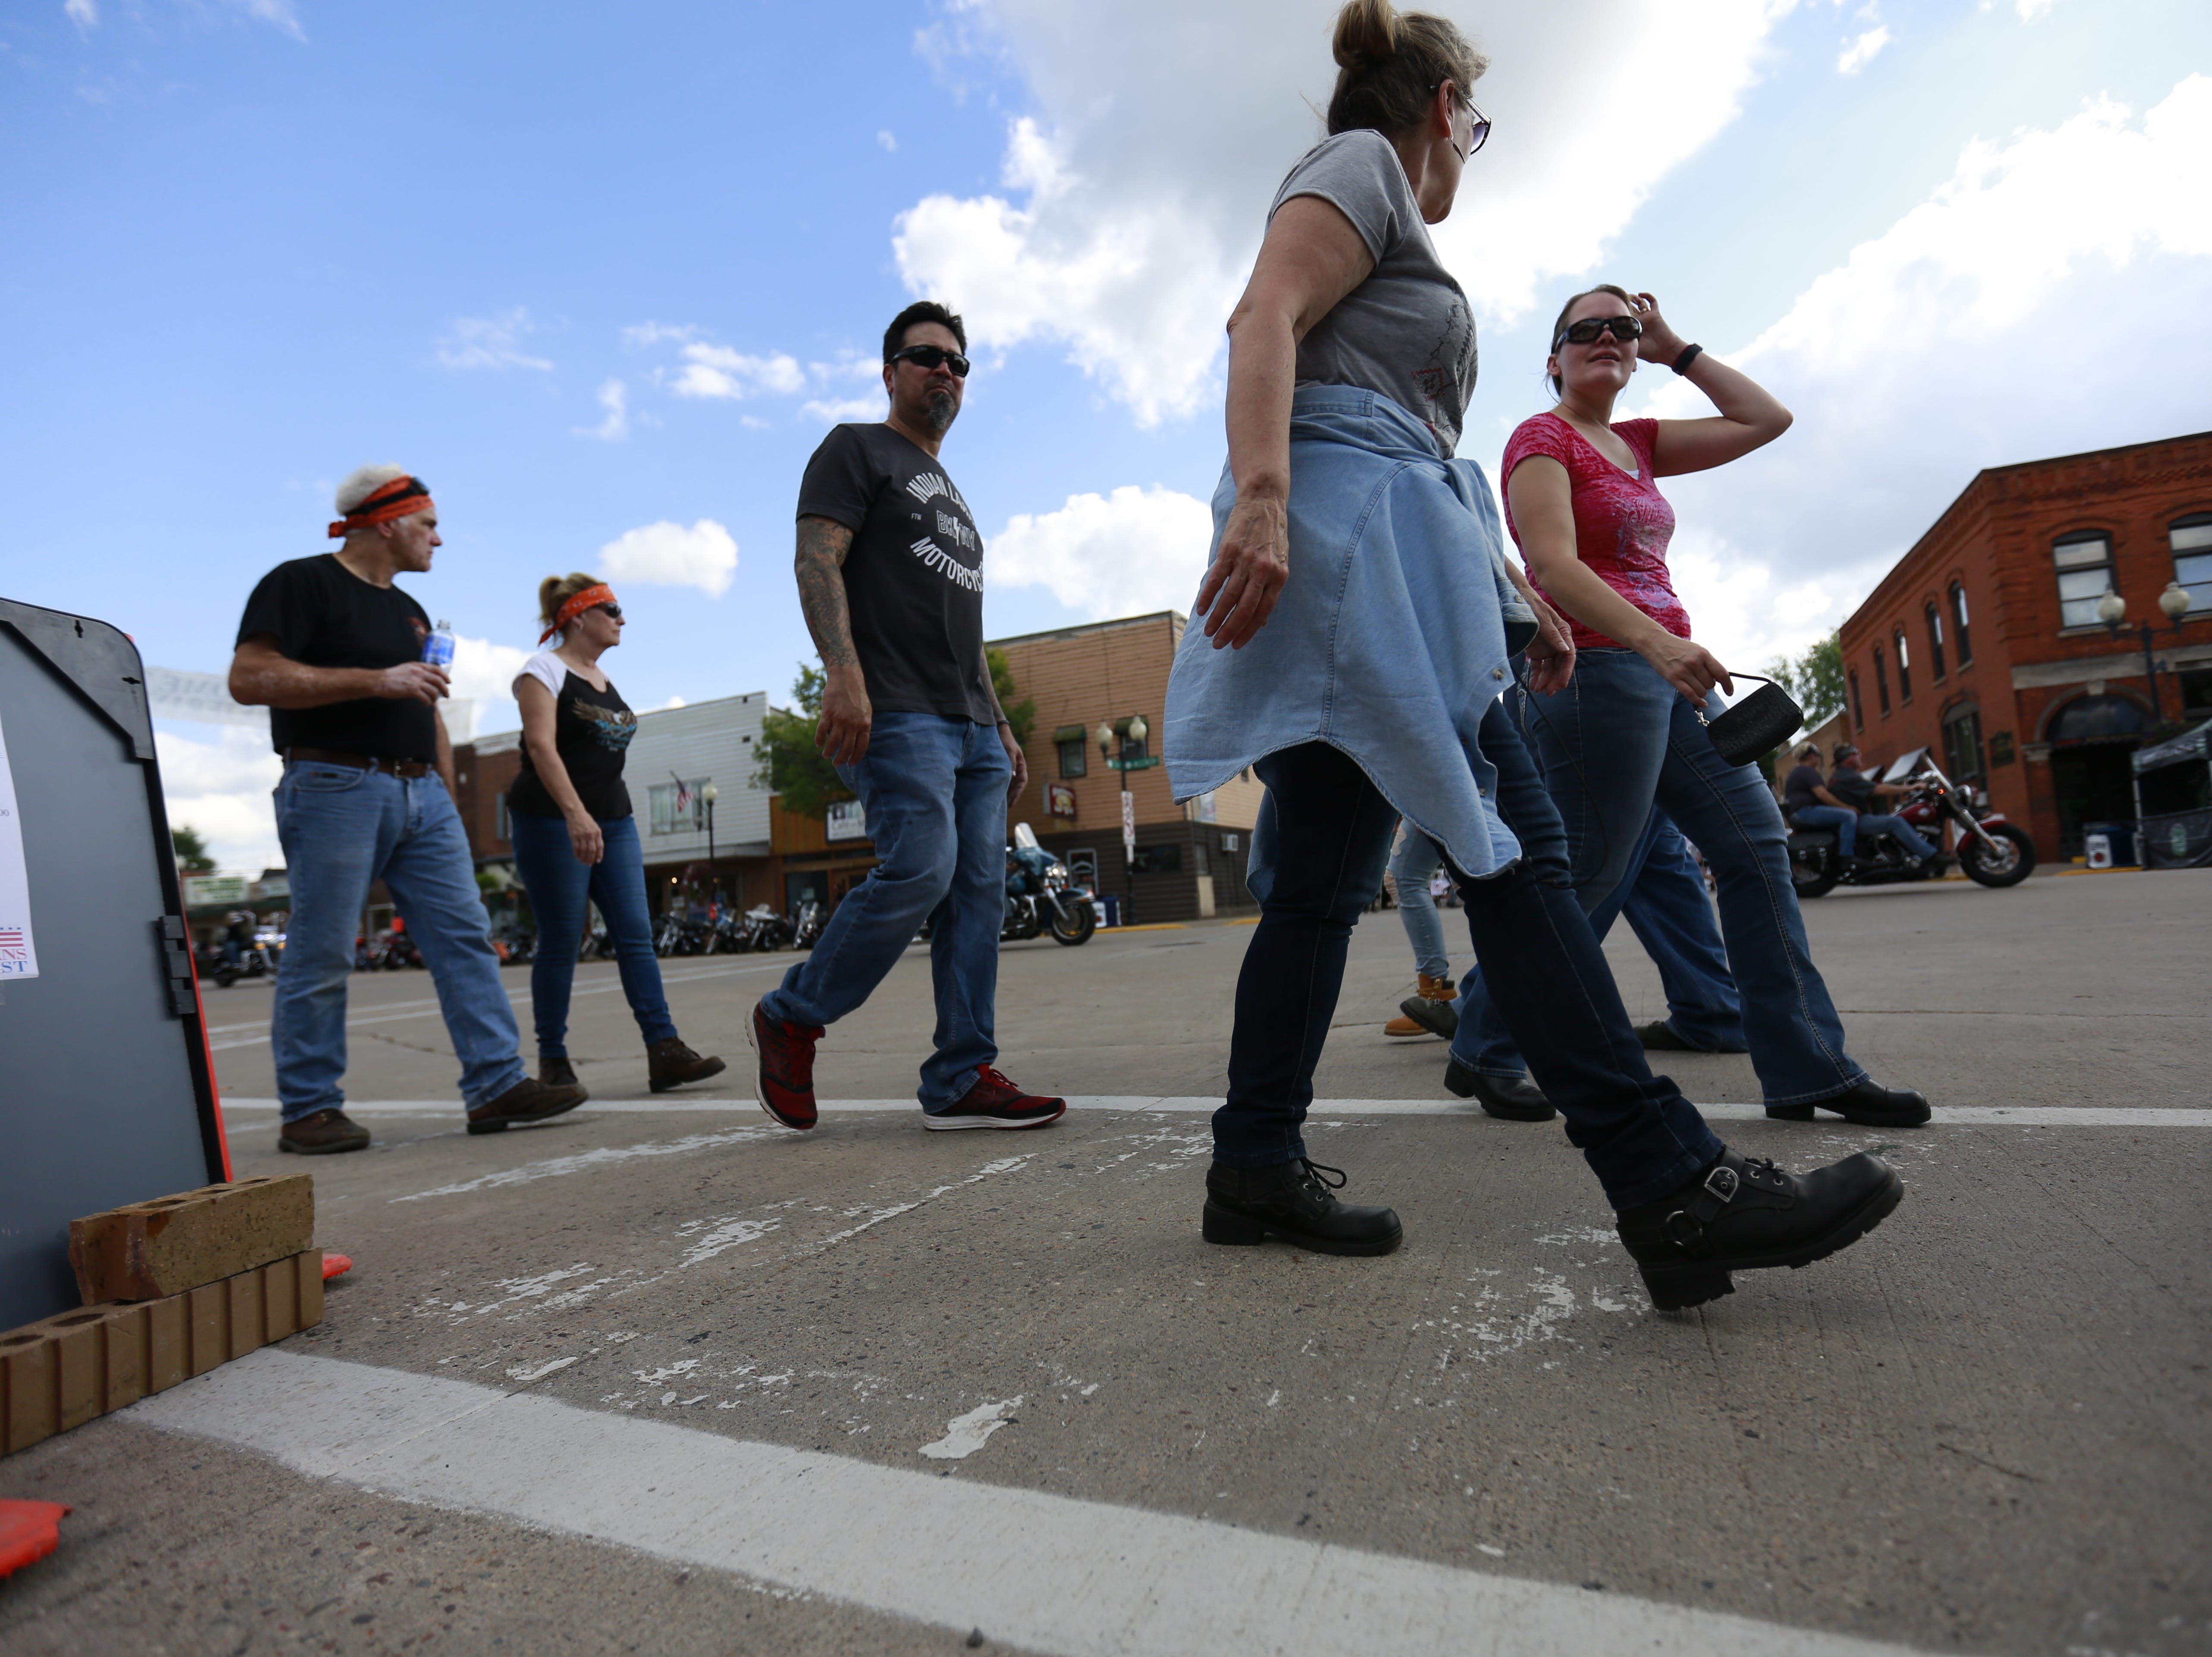 People crossing the road during the 37th Annual Tomahawk Fall Ride Friday, Sept. 14, 2018, at downtown Tomahawk, Wis. T'xer Zhon Kha/USA TODAY NETWORK-Wisconsin